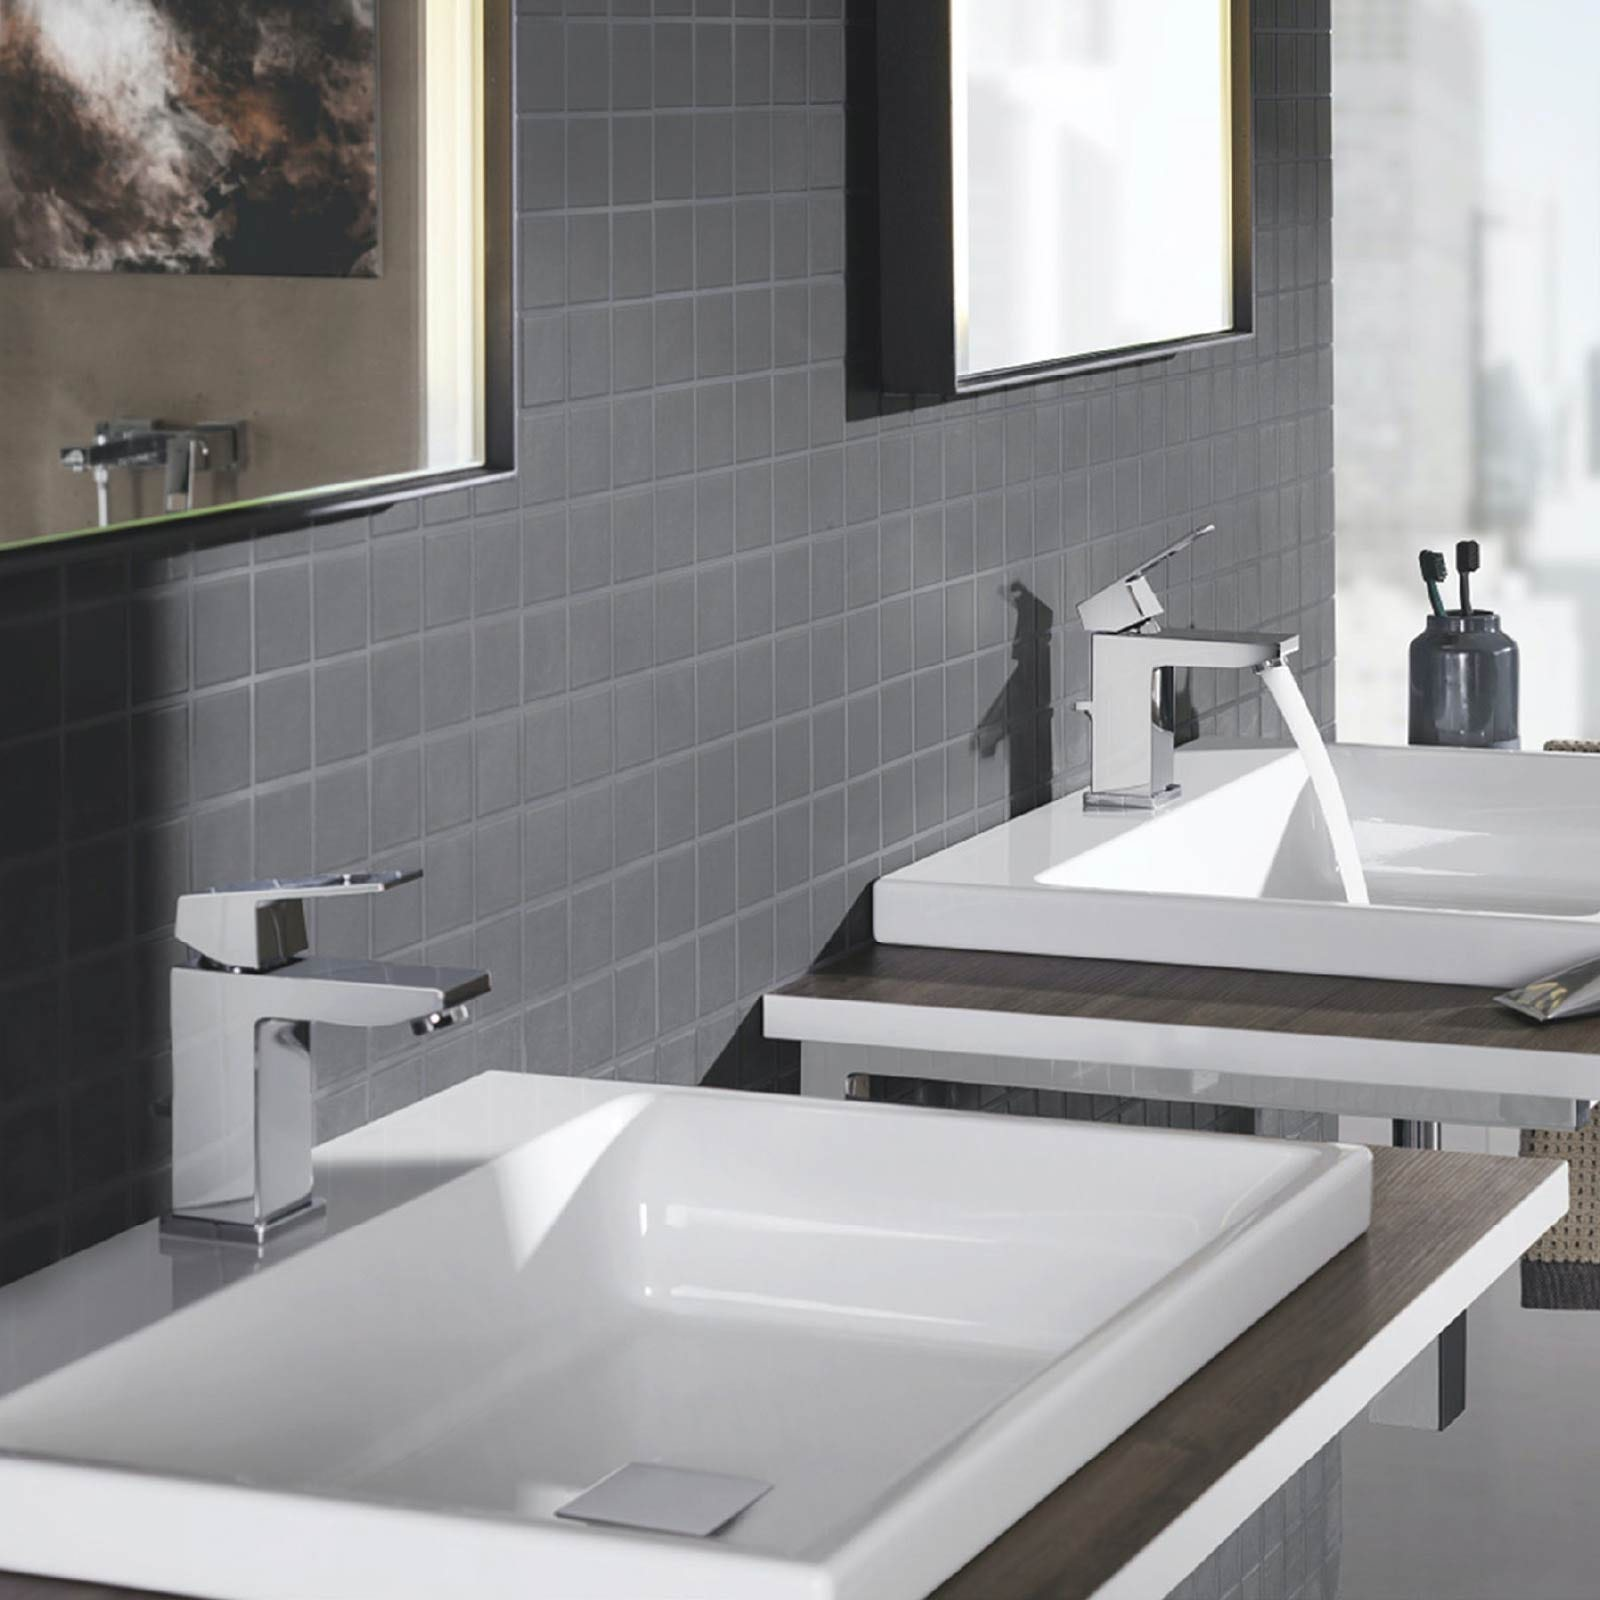 Grohe Eurocube basin mixer tap with waste